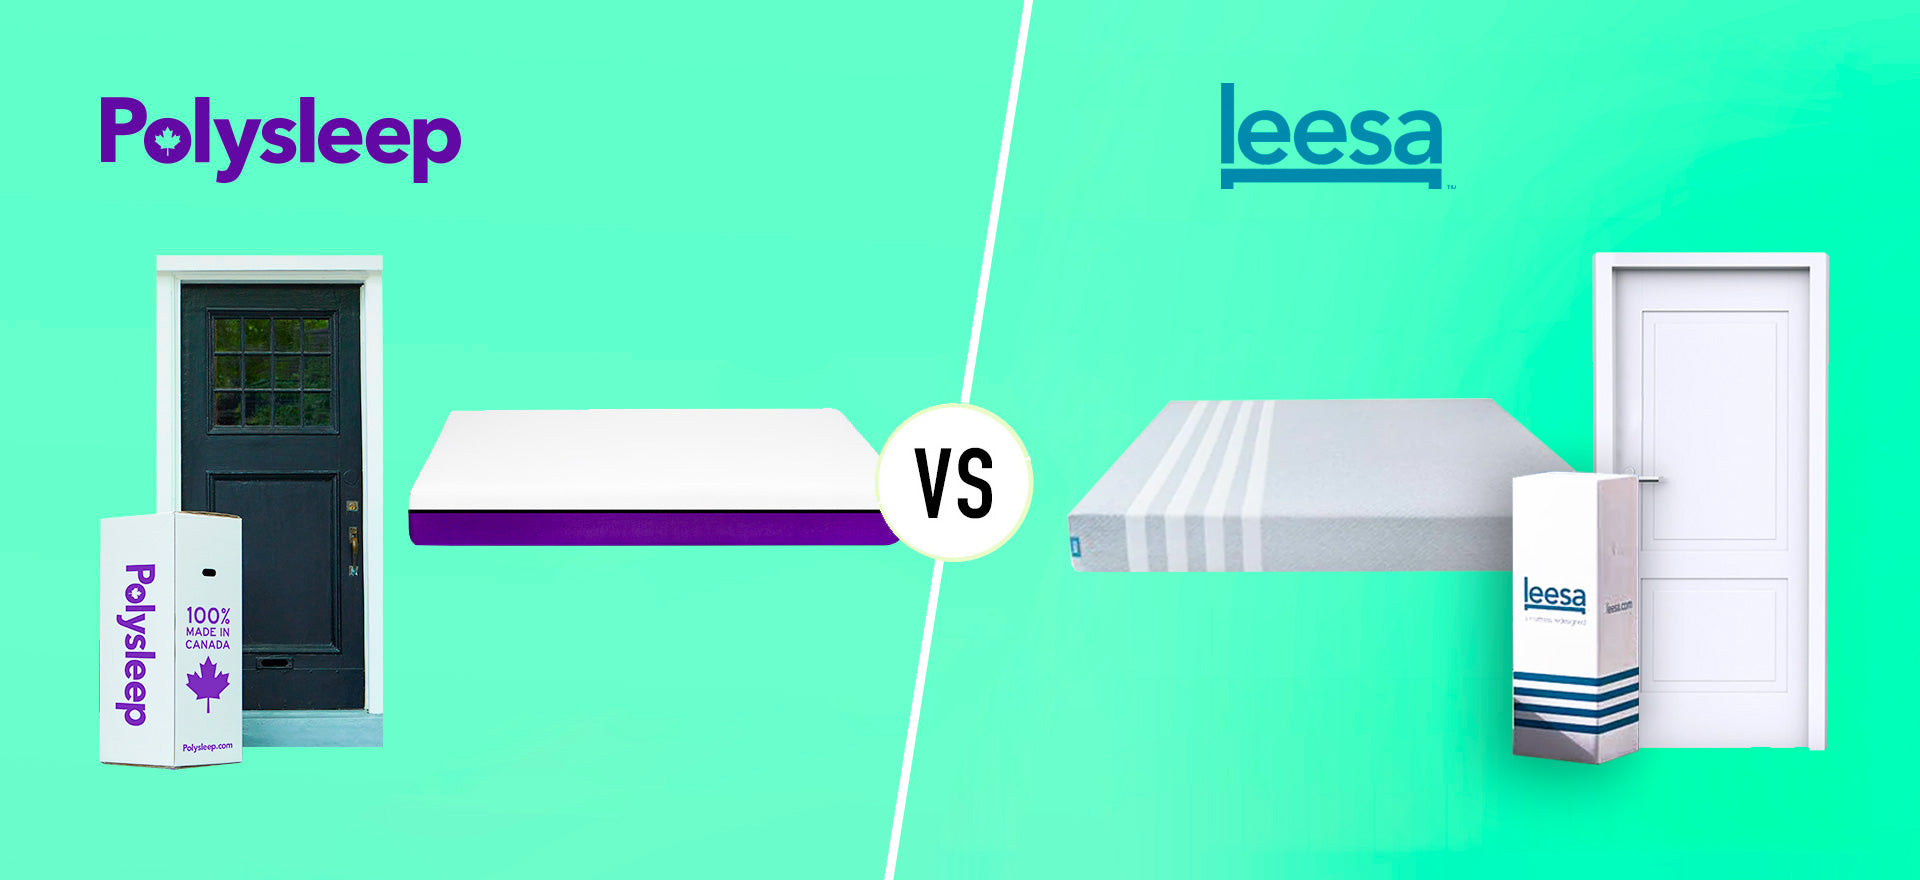 Leesa vs Polysleep mattress comparison